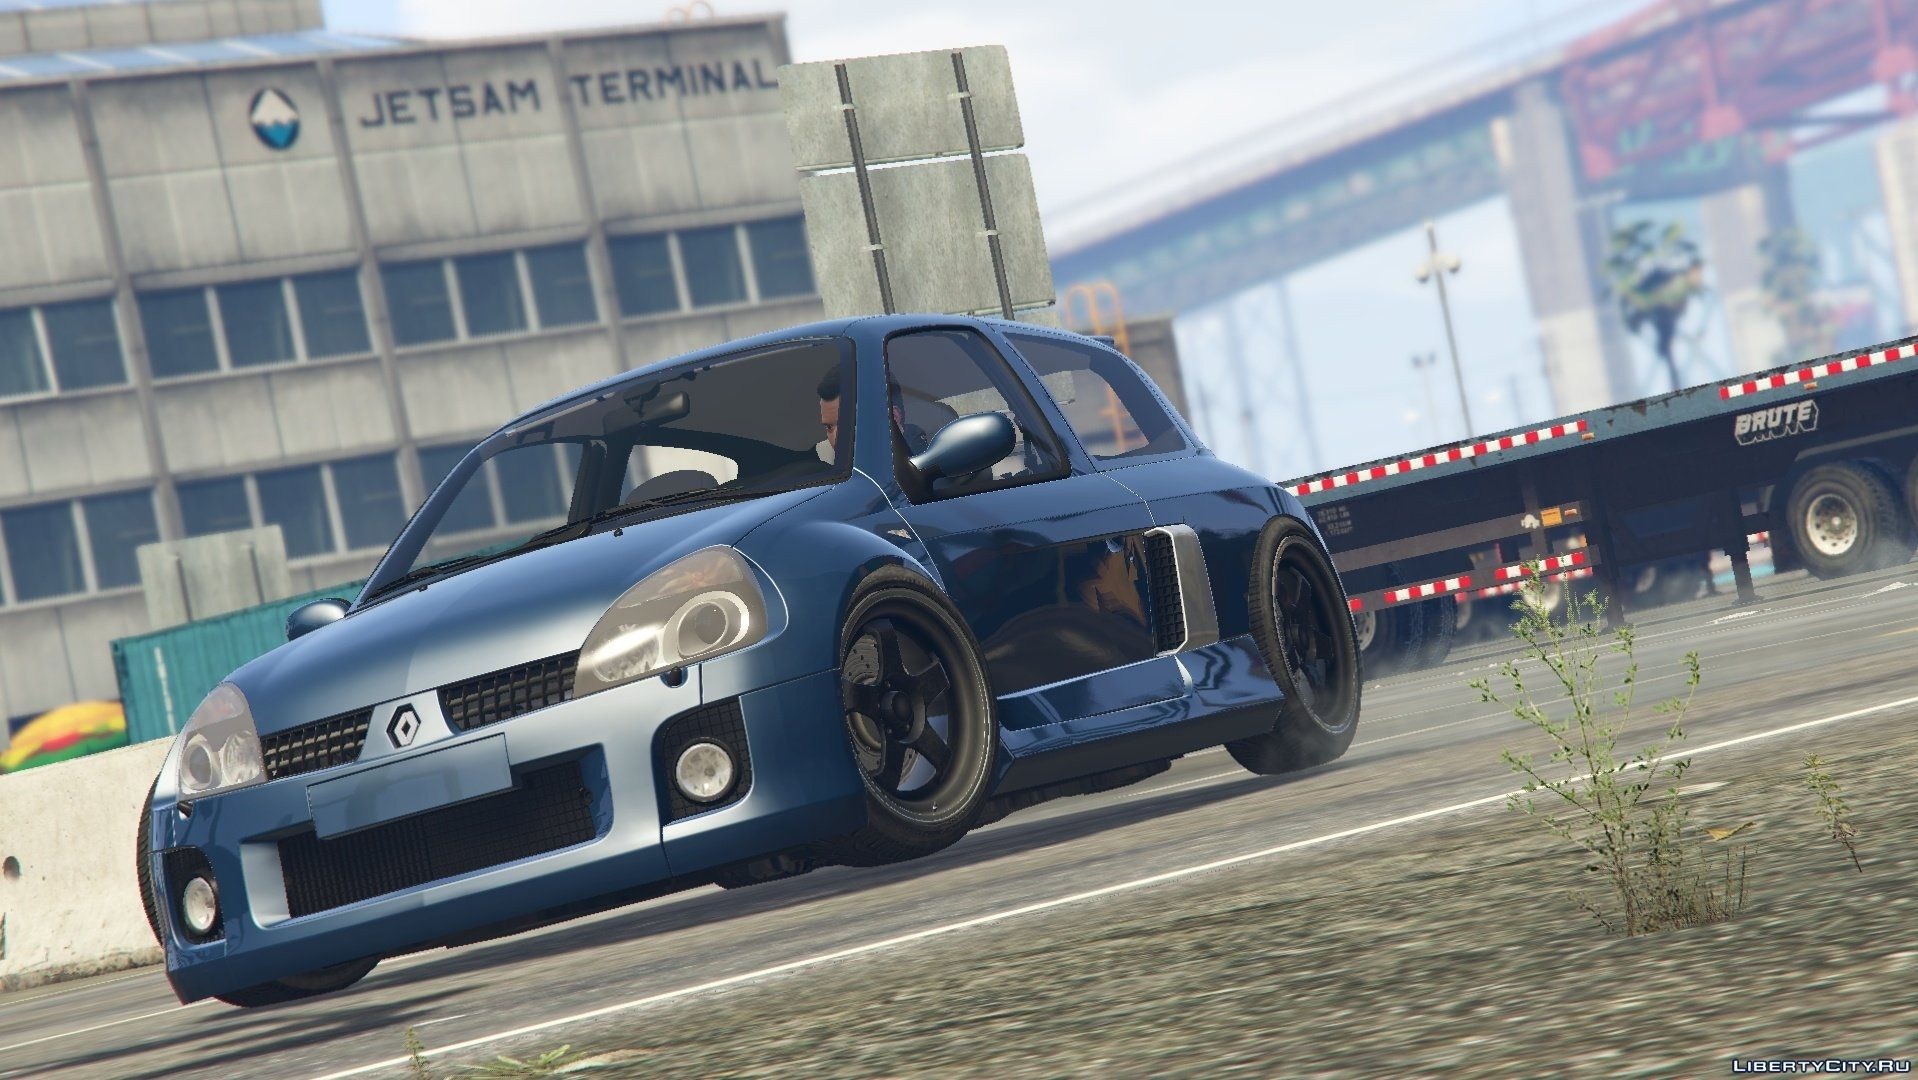 2003 Renault Clio V6 (Phase 2) [Tuning] for GTA 5